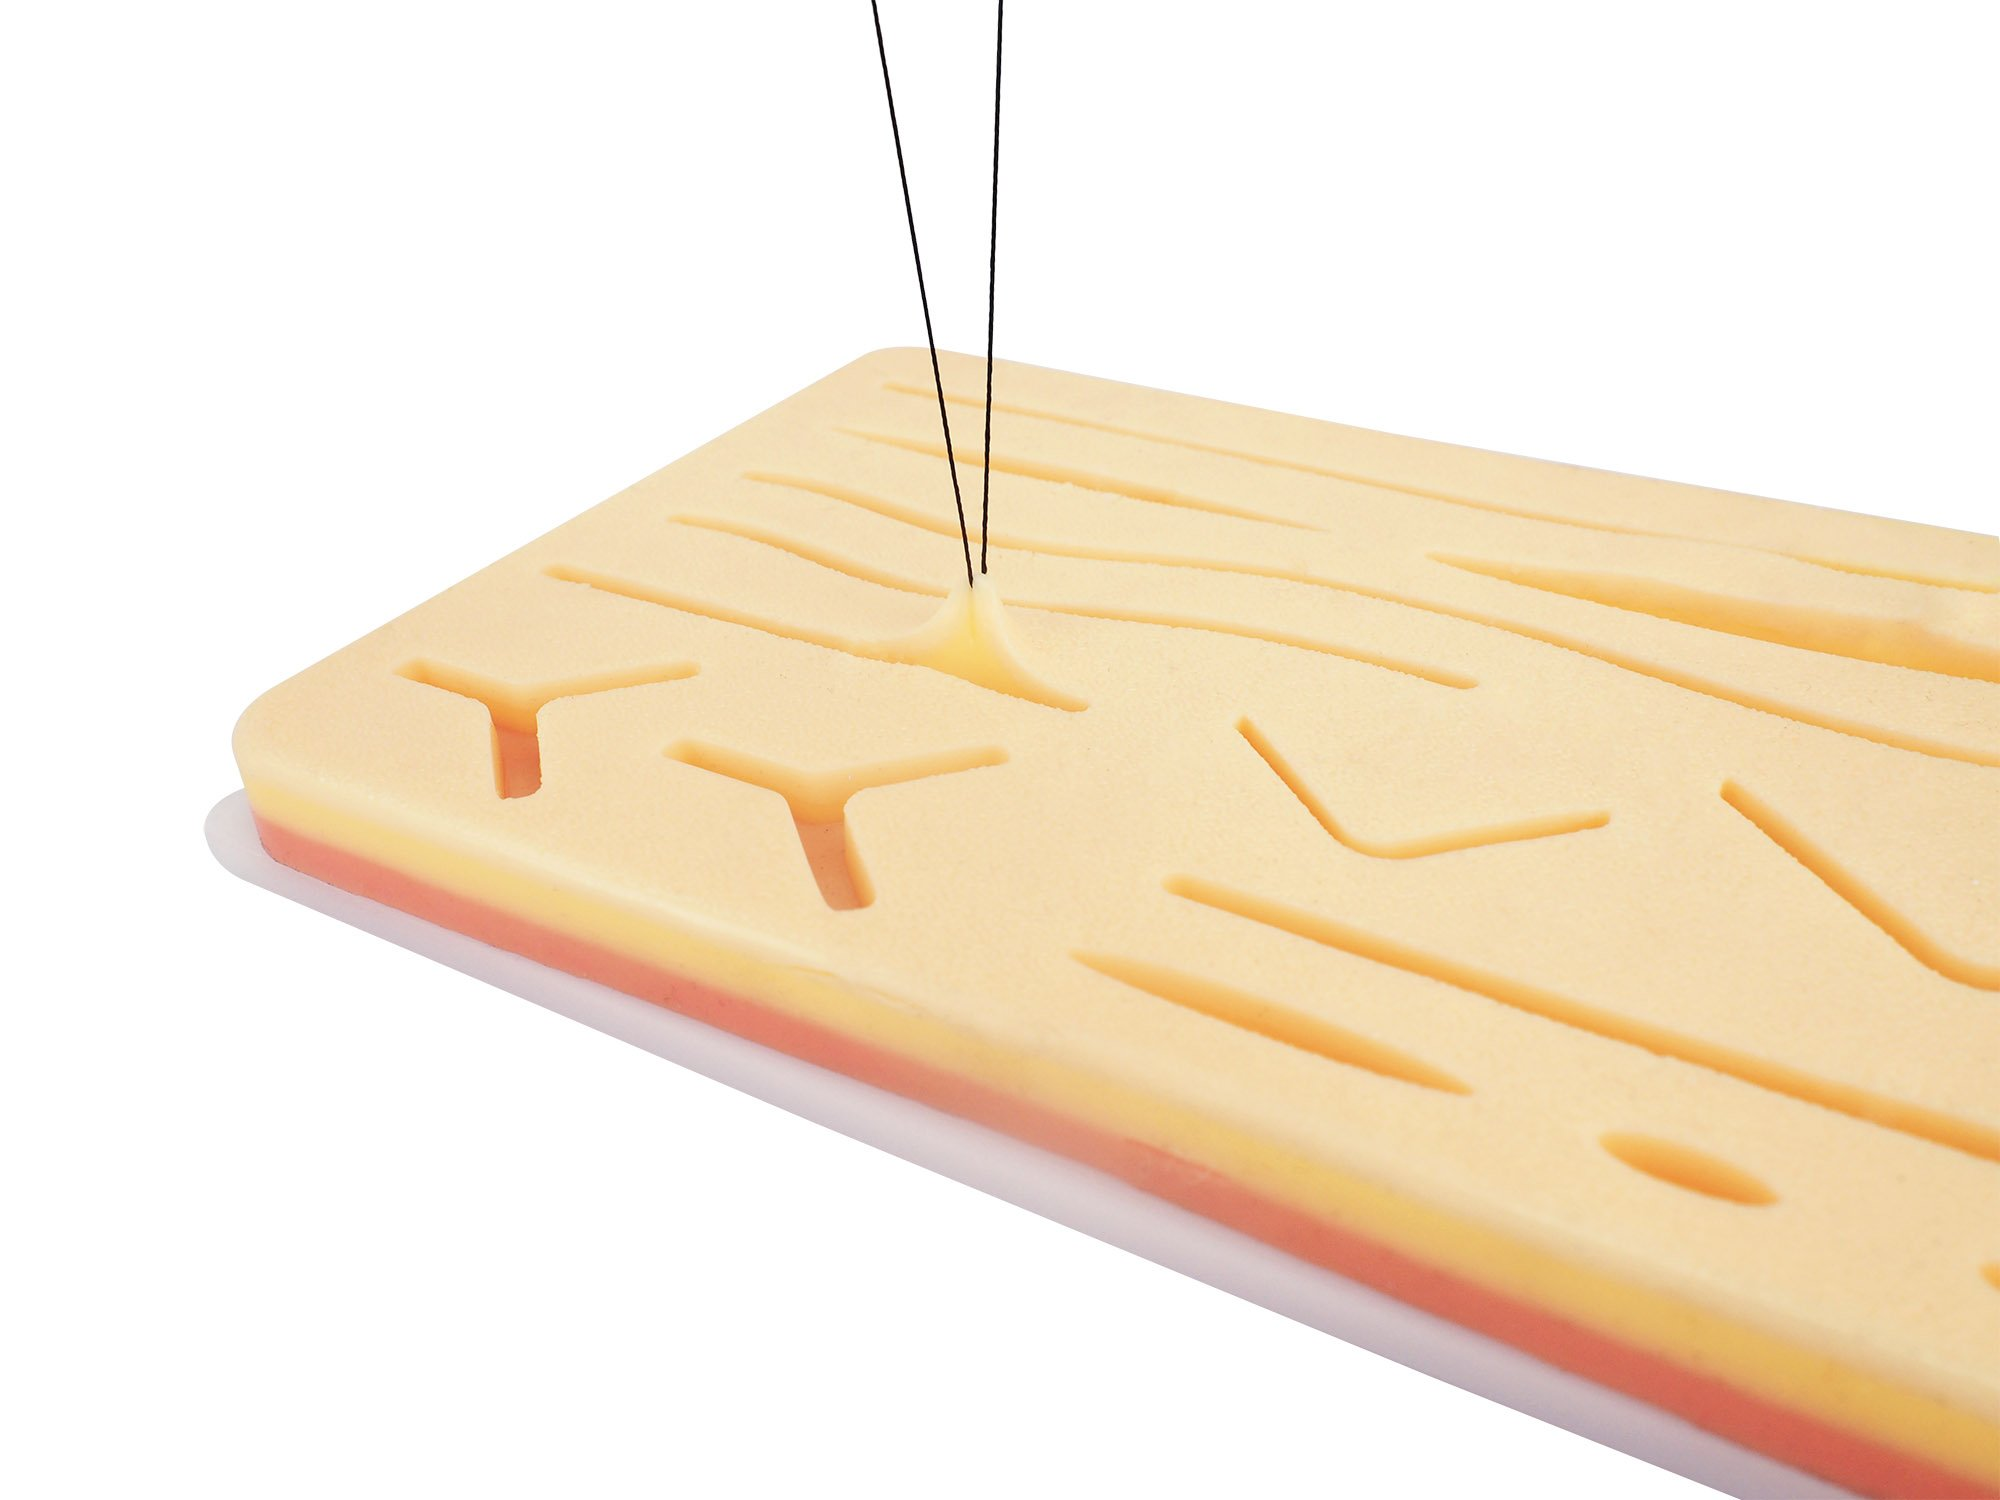 Suture Pad - Practice Your Suturing and Medical Training - Large - 3 Layers with Skin Wounds - Anti-Slip Base - Added Webbing Between Layers to Increase Strength & Durability